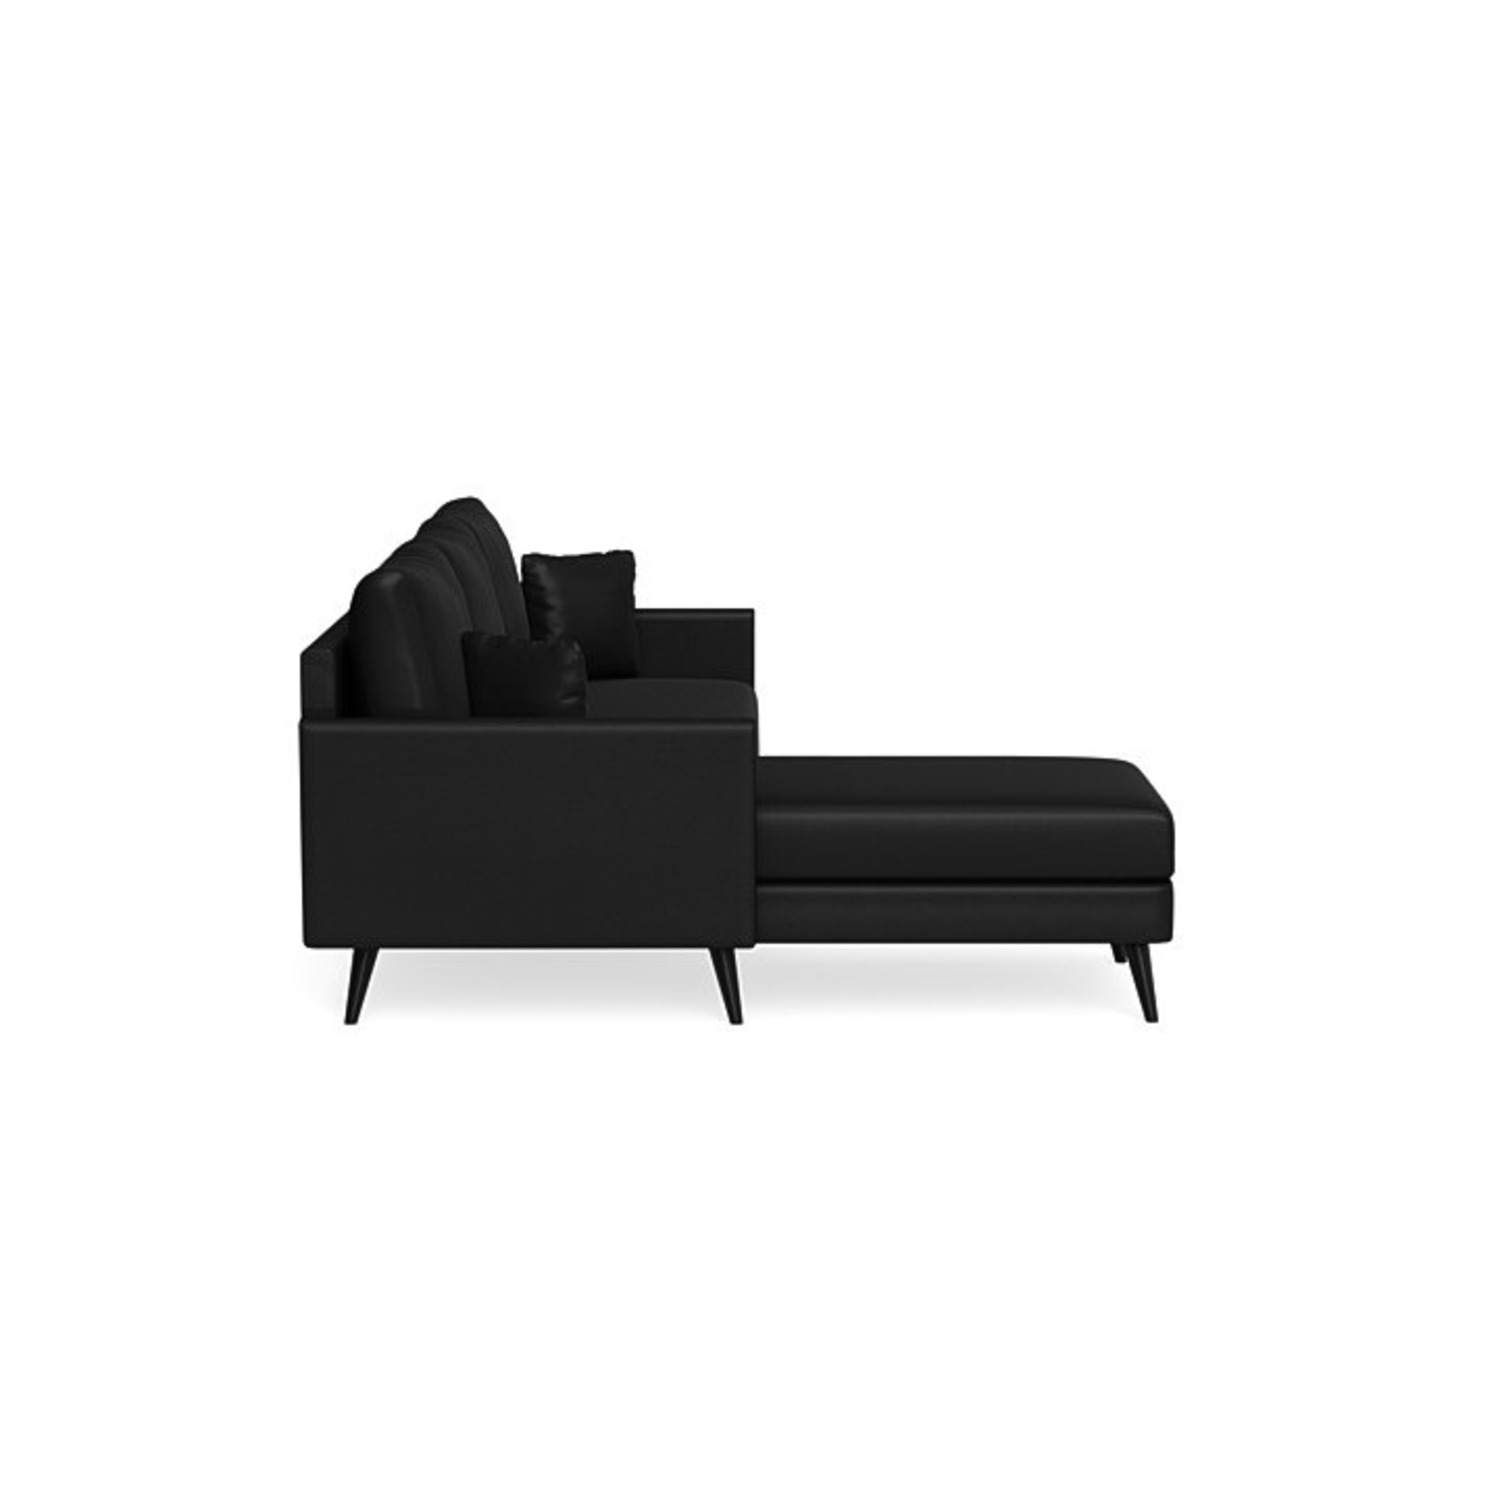 Inside Weather Custom Issa Sectional in Onyx - image-3